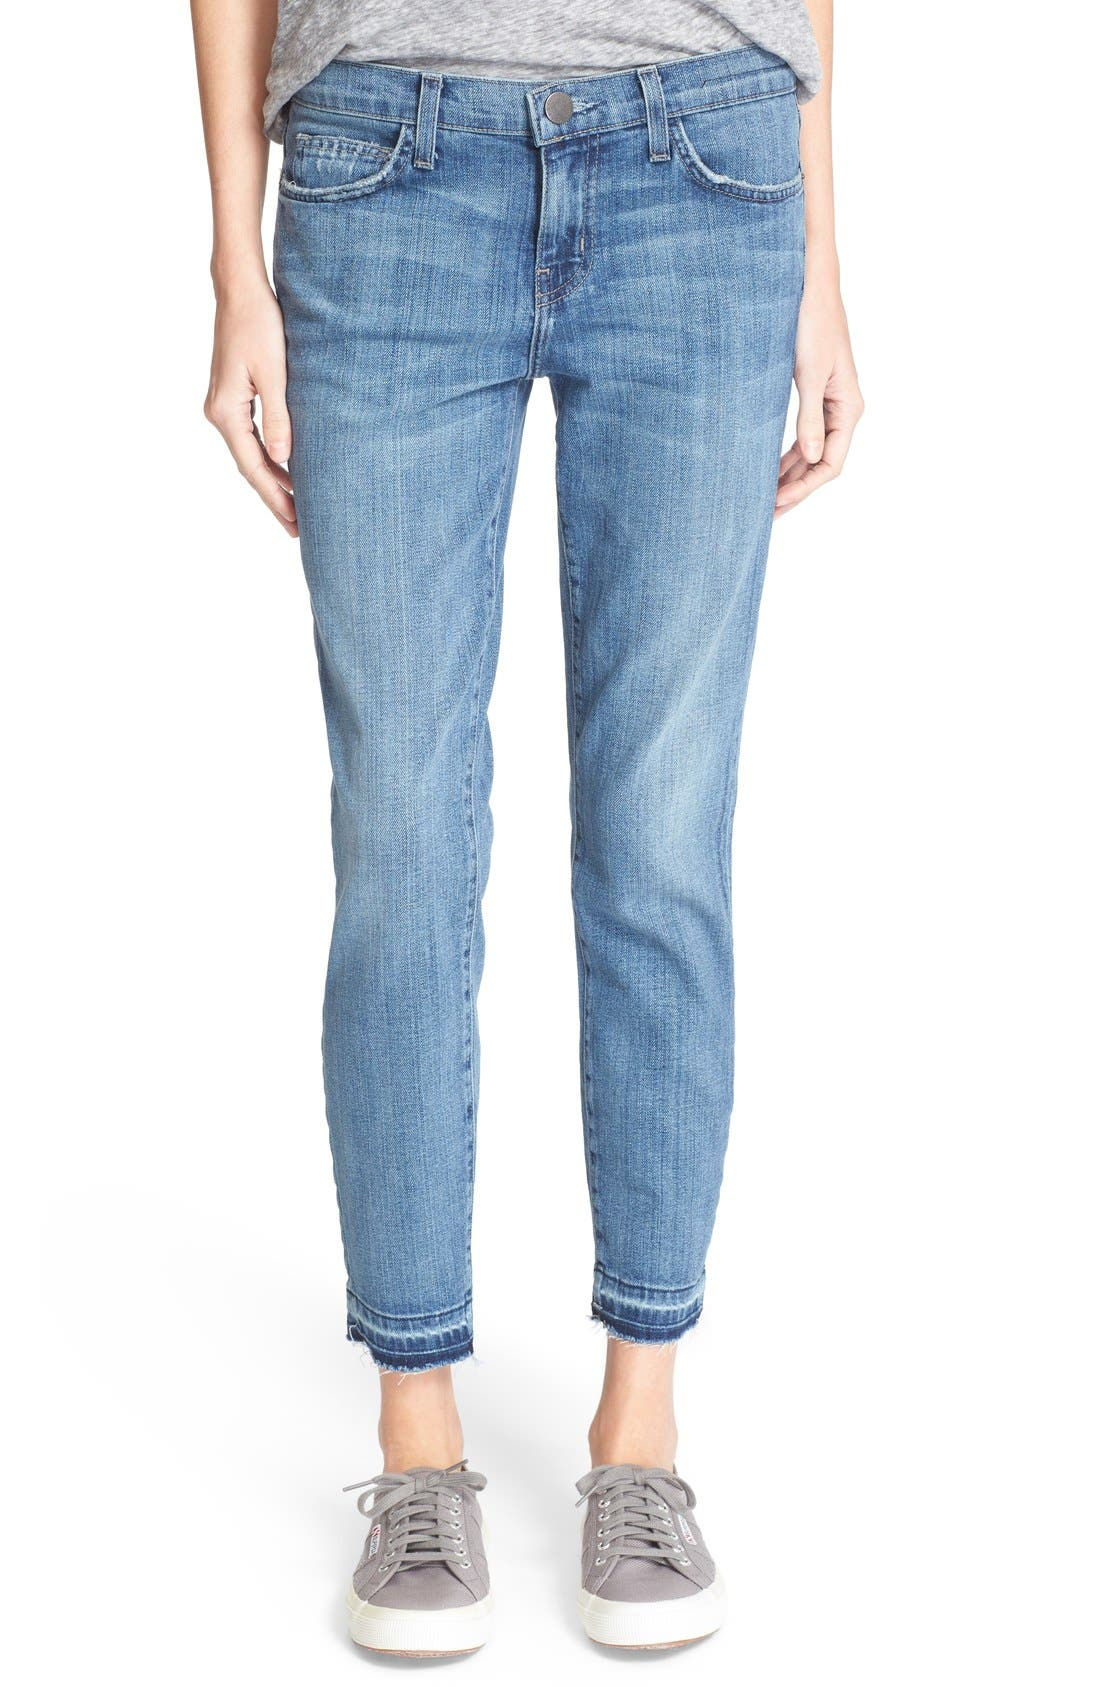 Main Image - Current/Elliott 'The Stiletto' Stretch Jeans (Amour Released Hem)